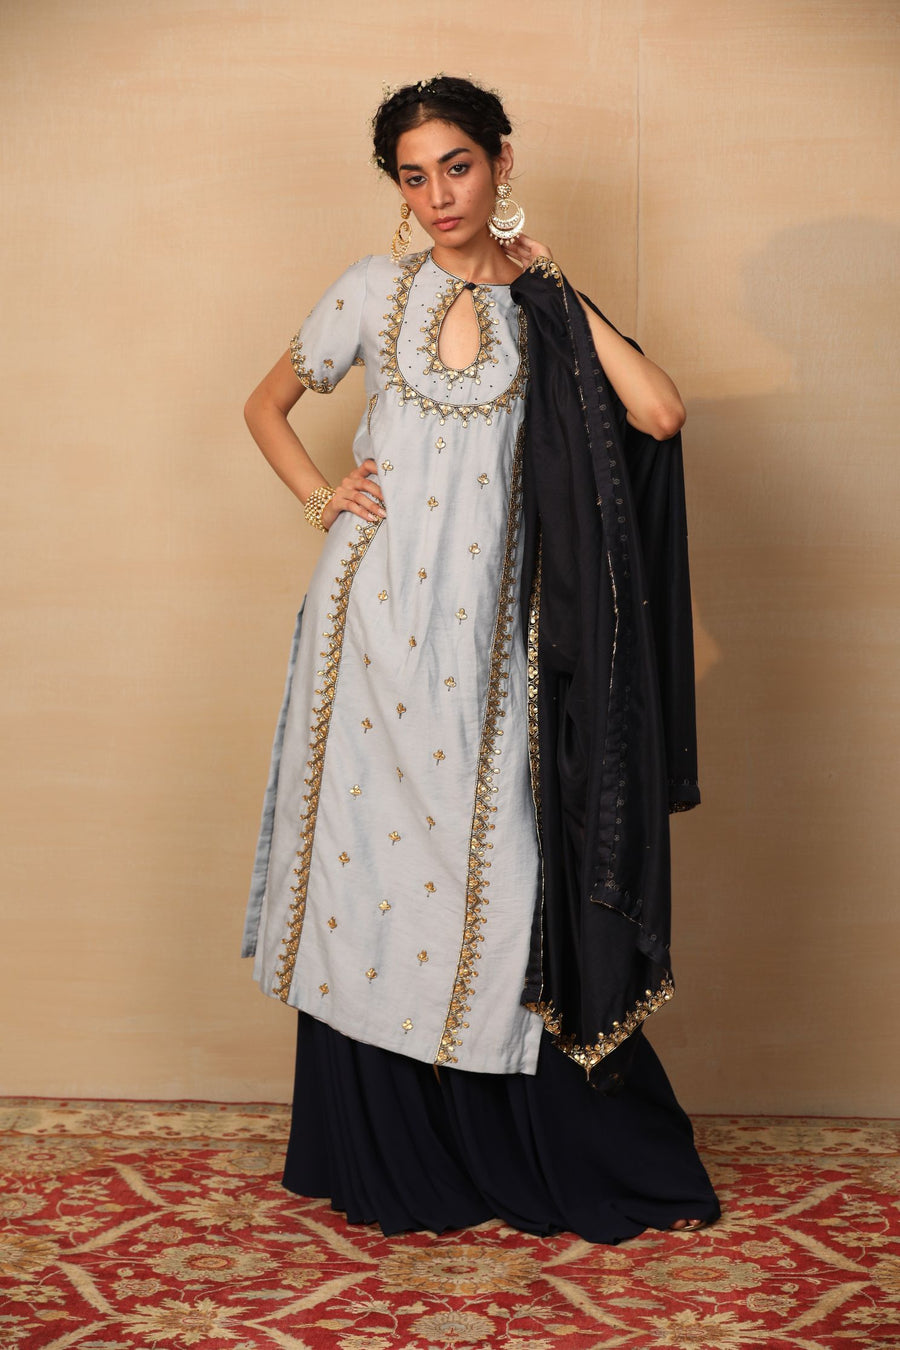 SYNDHYA Powder Blue Flared Kurta with Palazzo - Sale Piece Ready to Ship